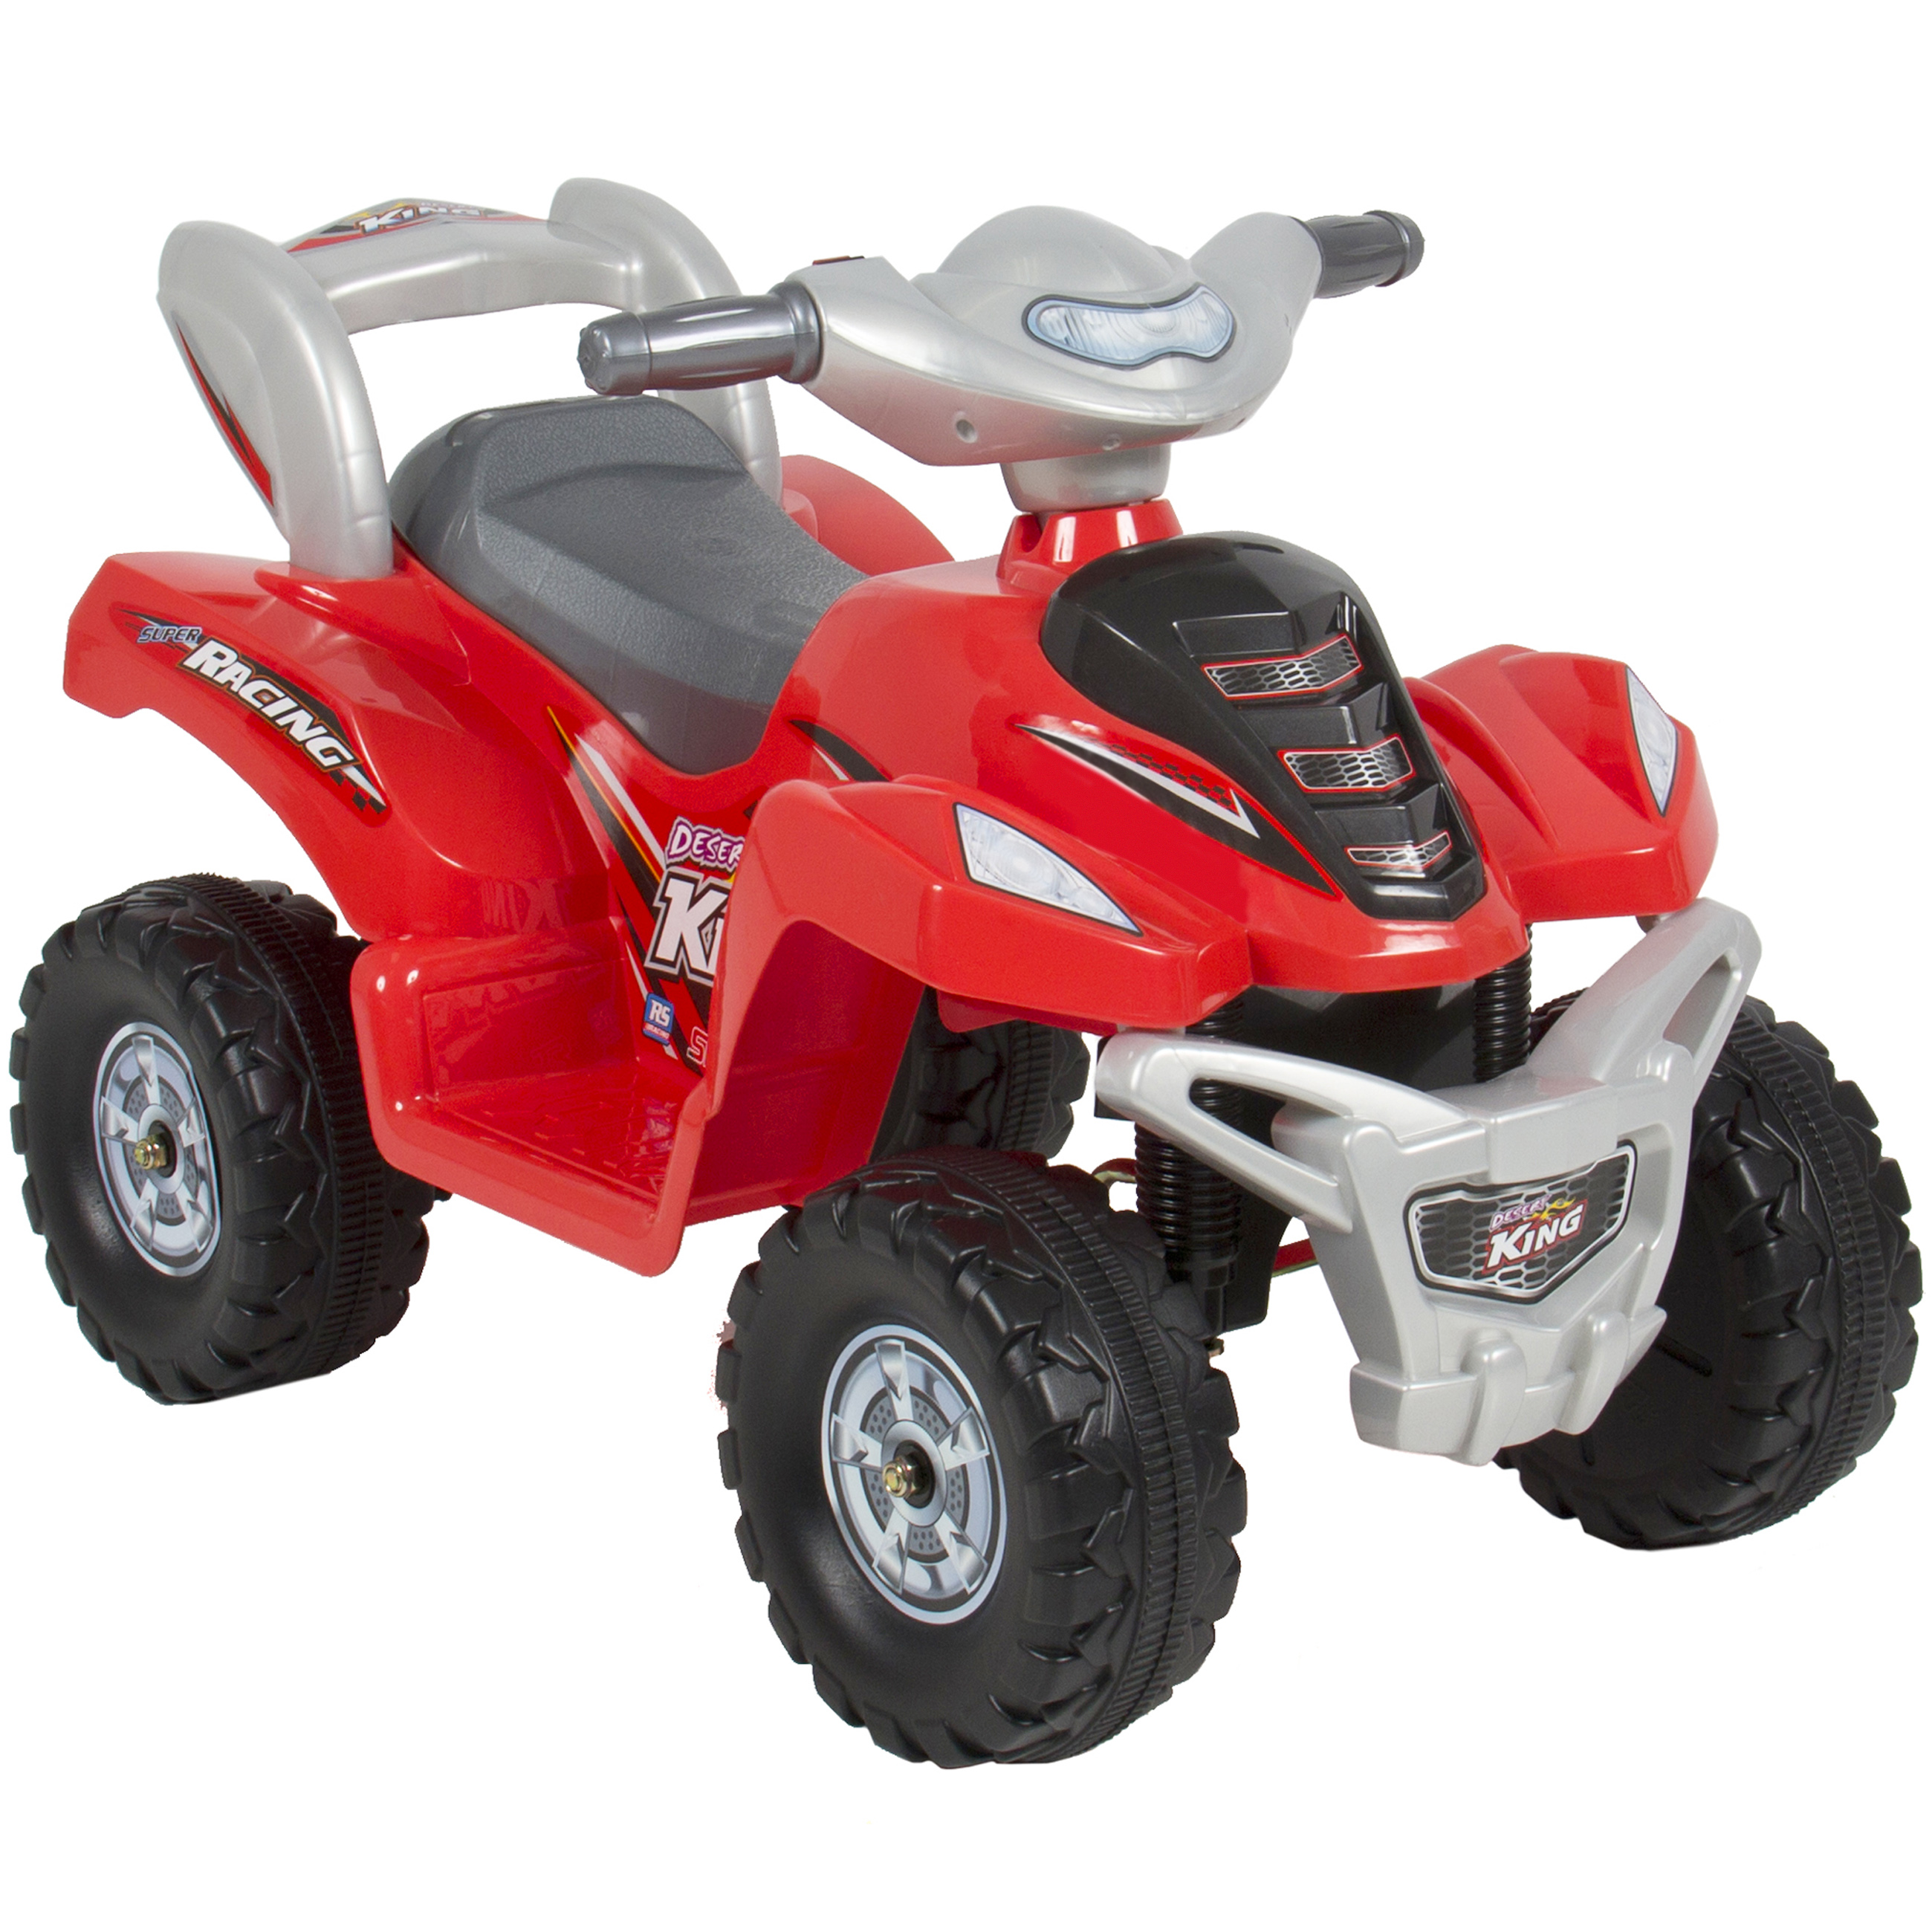 Choosing The Best Electric ATV